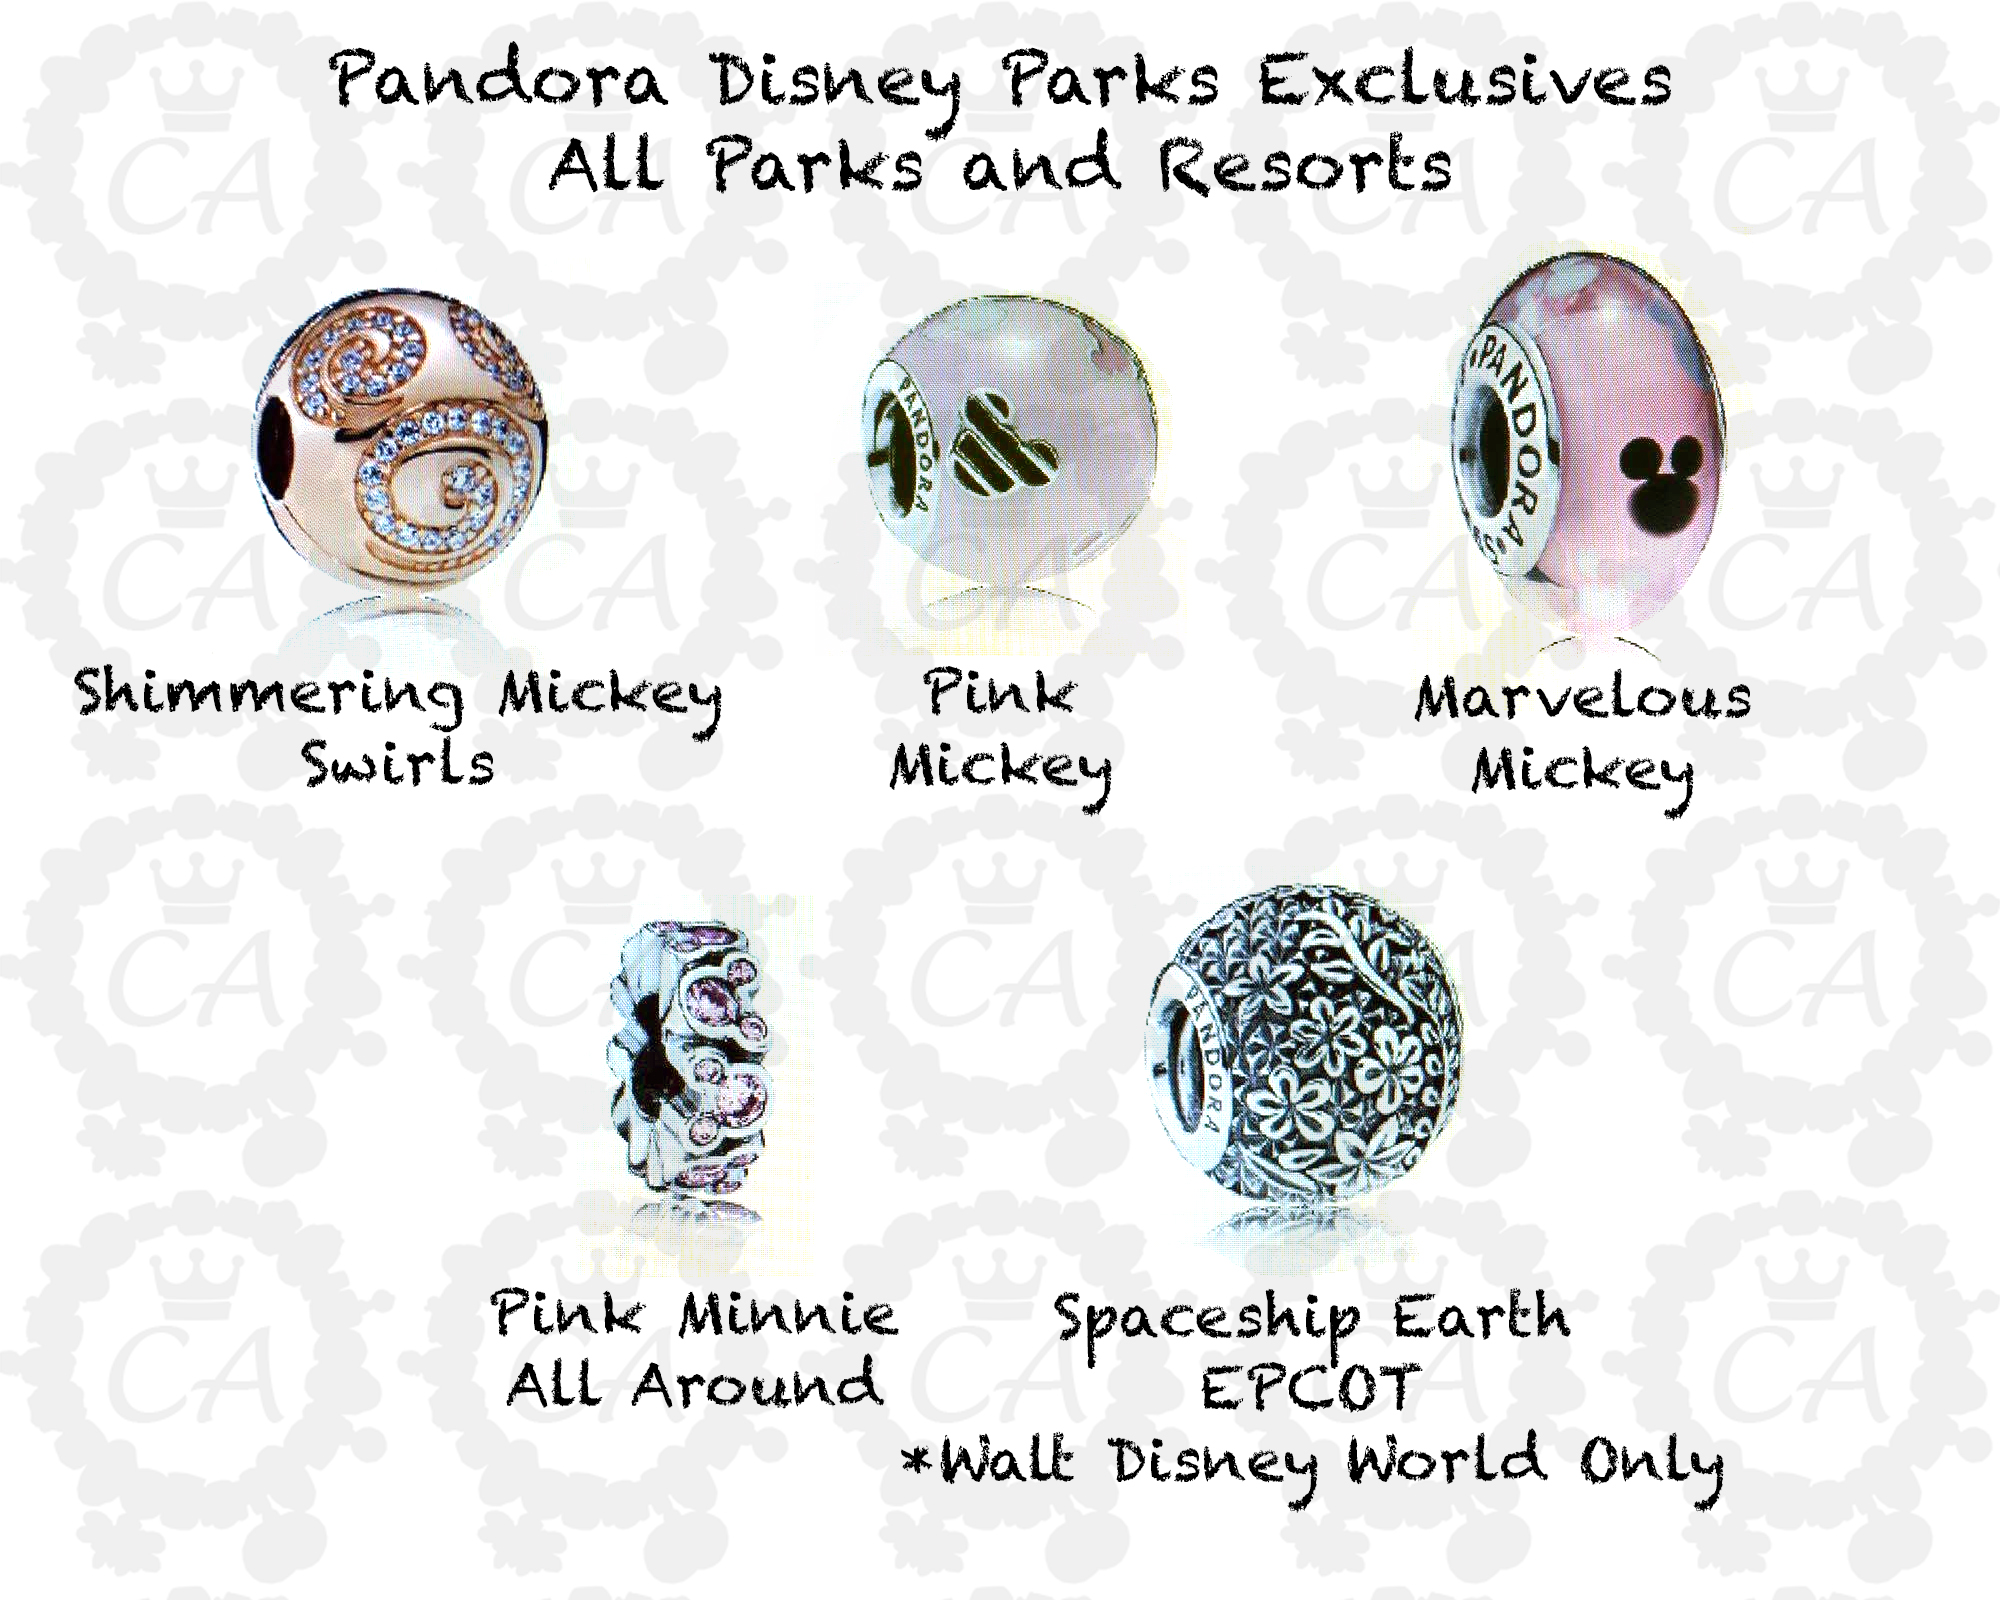 pandora charms exclusive to disney parks